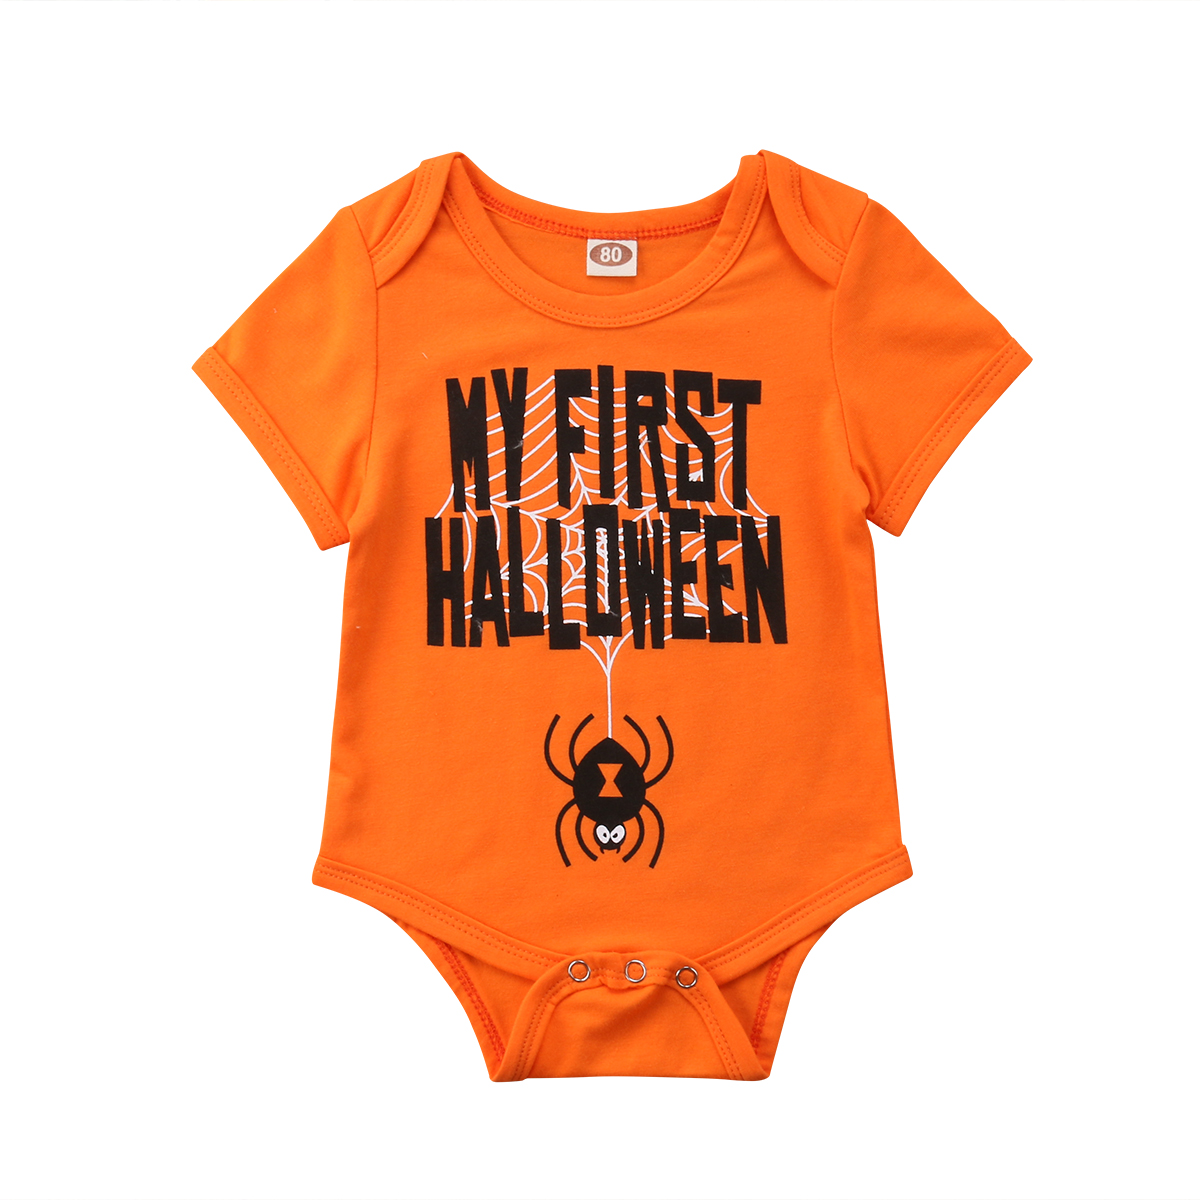 2018 Halloween Baby Boy Girl Clothing Short Sleeve Newborn Infant Baby   Rompers   Jumpsuit 0-18M